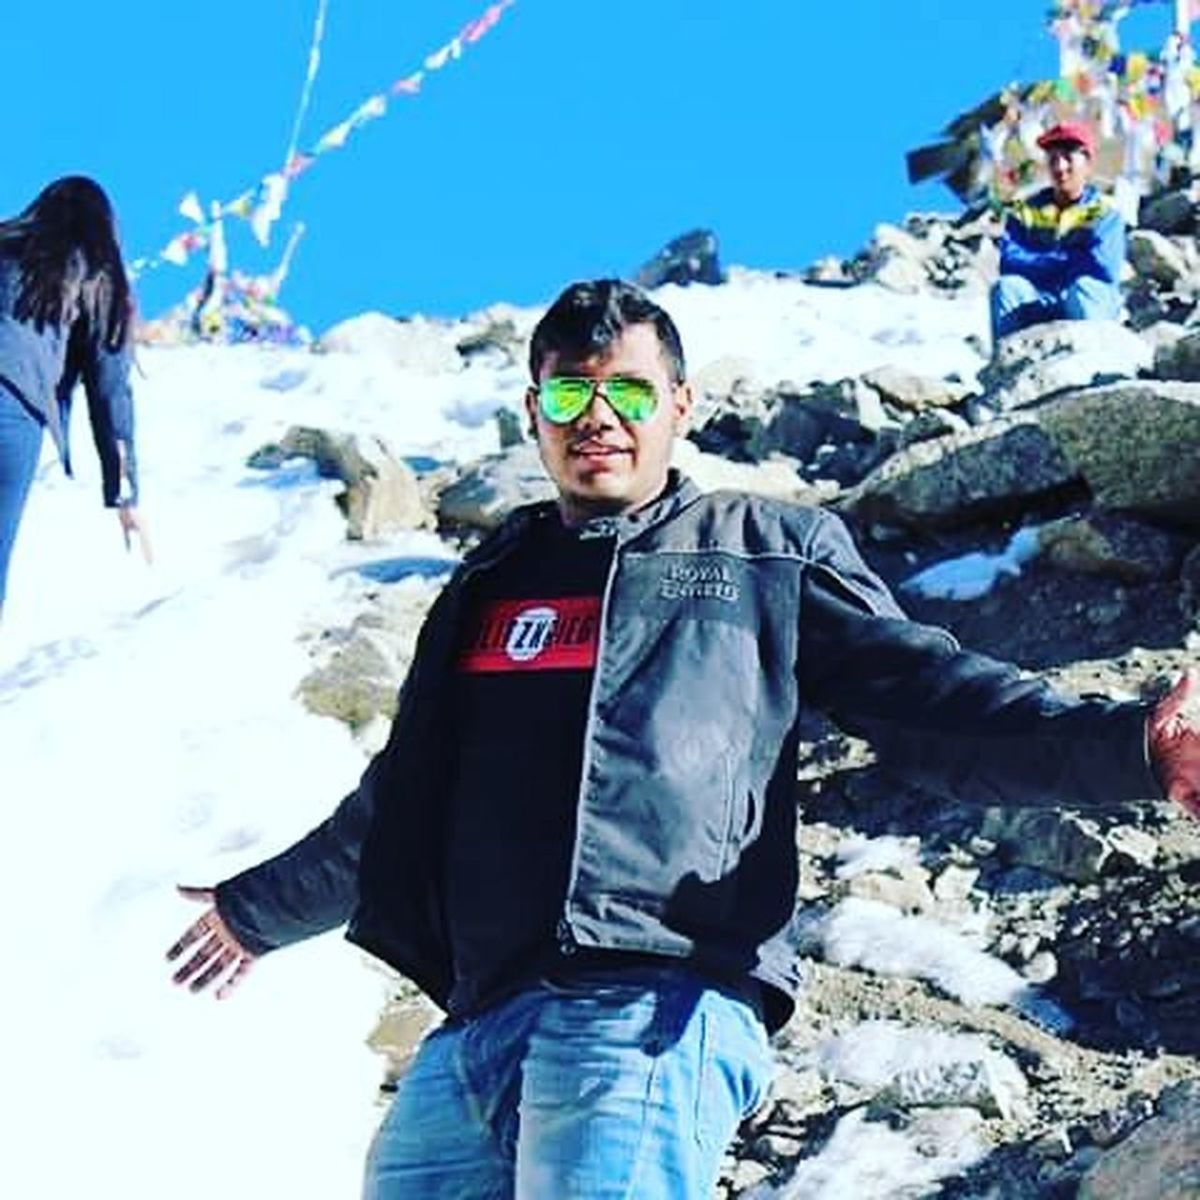 Ride to the highest road in the world MotorcycleDiaries Biker Cold Royalenfield Ladakhdiaries Royalenfield Beautiful Brcpune Landofthefree Mountains Peace Beautiful Ice DirtyAsHell Gears